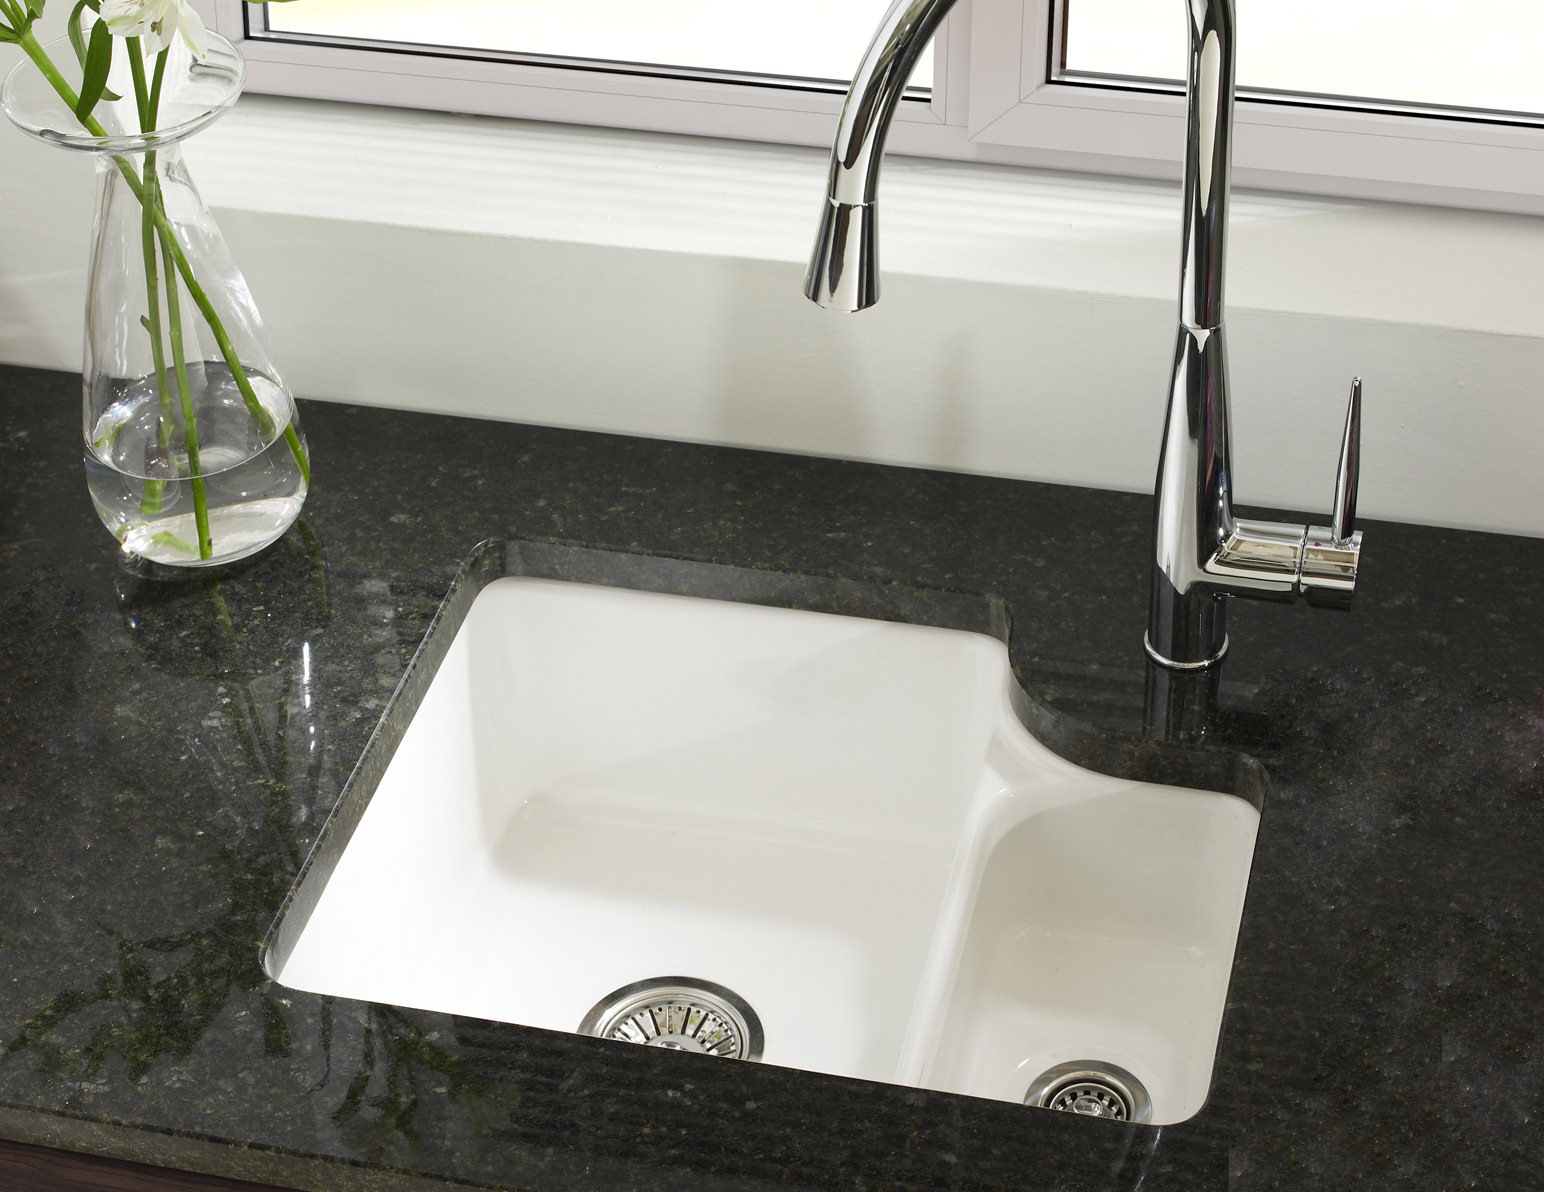 Ceramic Kitchen Sink Astracast Lincoln 1 5 Bowl Ceramic Undermount Kitchen Sink